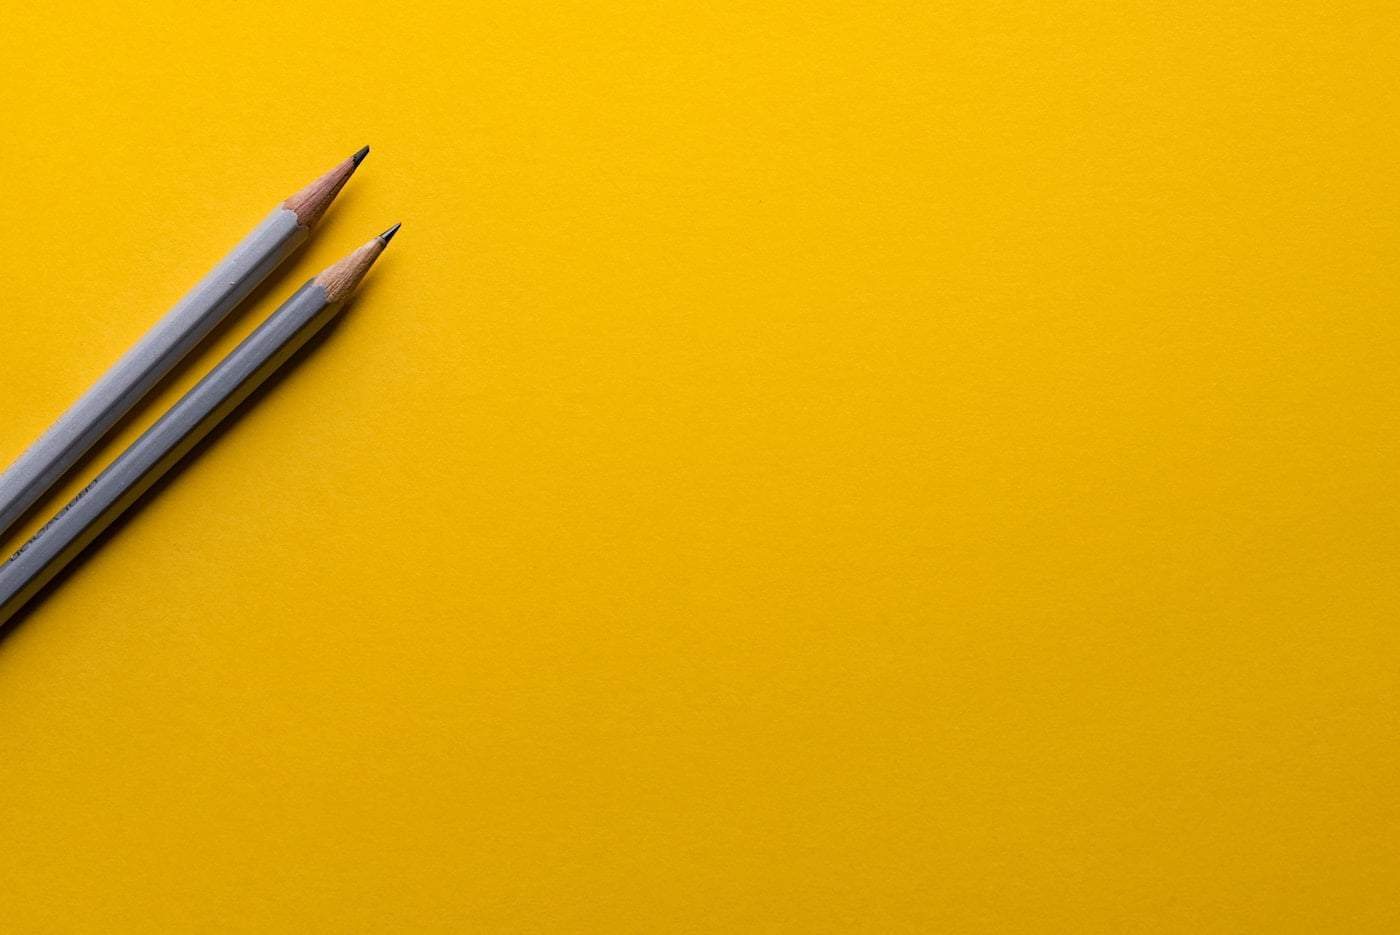 Pencils on yellow background symbolising Health & Education Co-Operative